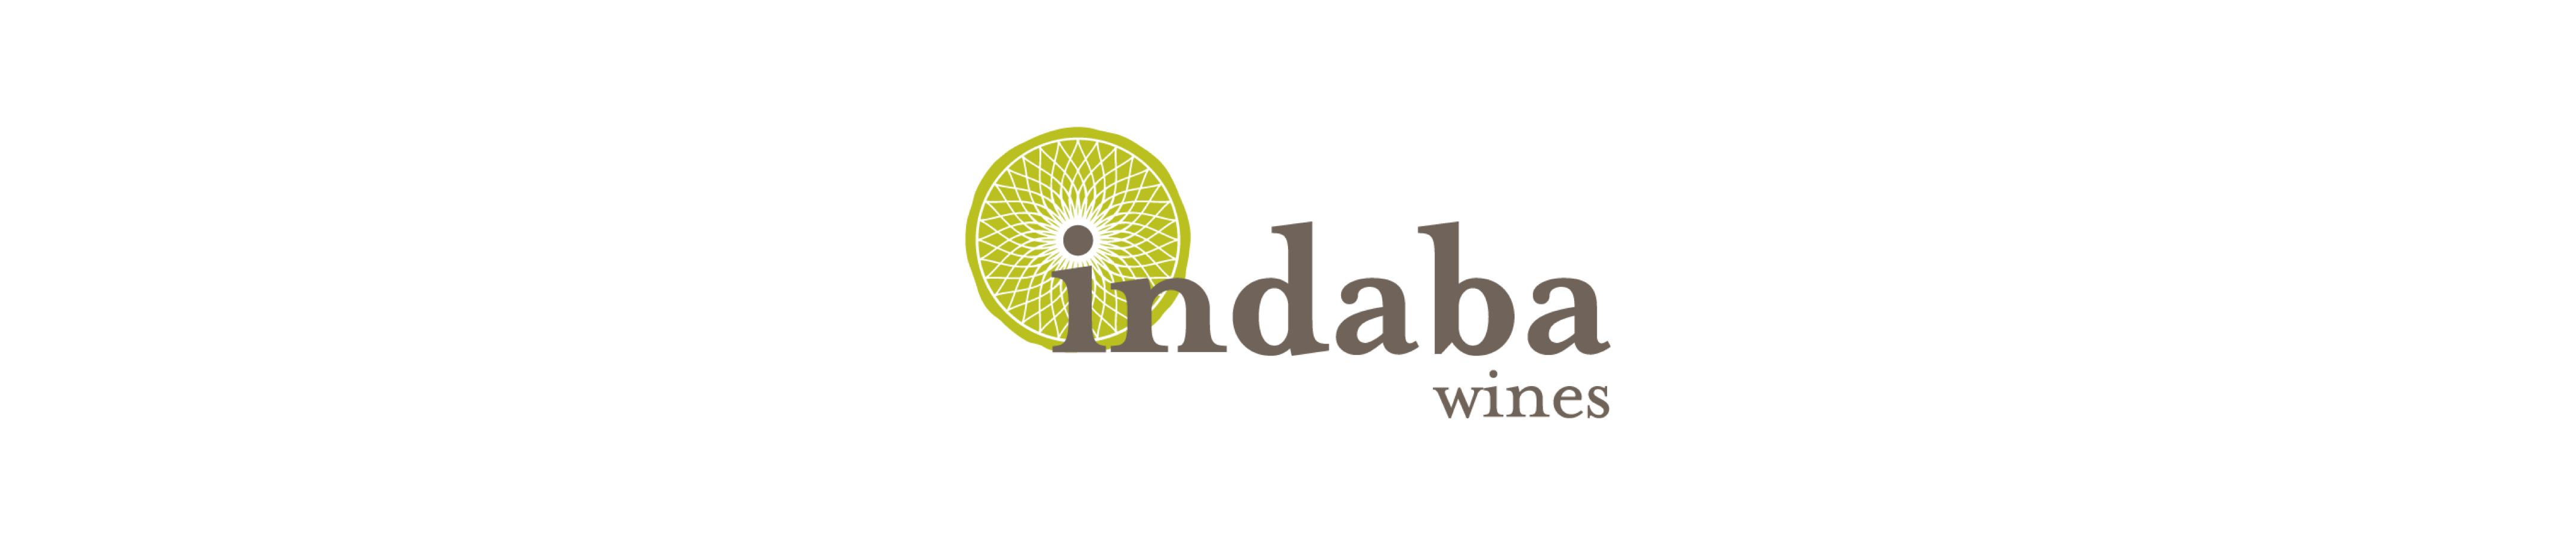 "Drawn from the world's oldest soils, Indaba wines are crafted by family farmers who have perfected their art over generations. These are real wines, made by real people. Stylistically fresh, juicy and approachable, these wines are food friendly and offer a bottling for every palate. Consistently garnering ""Best Value"" and ""Best Buy"" accolades, Indaba Wines present character and structure well beyond its price."